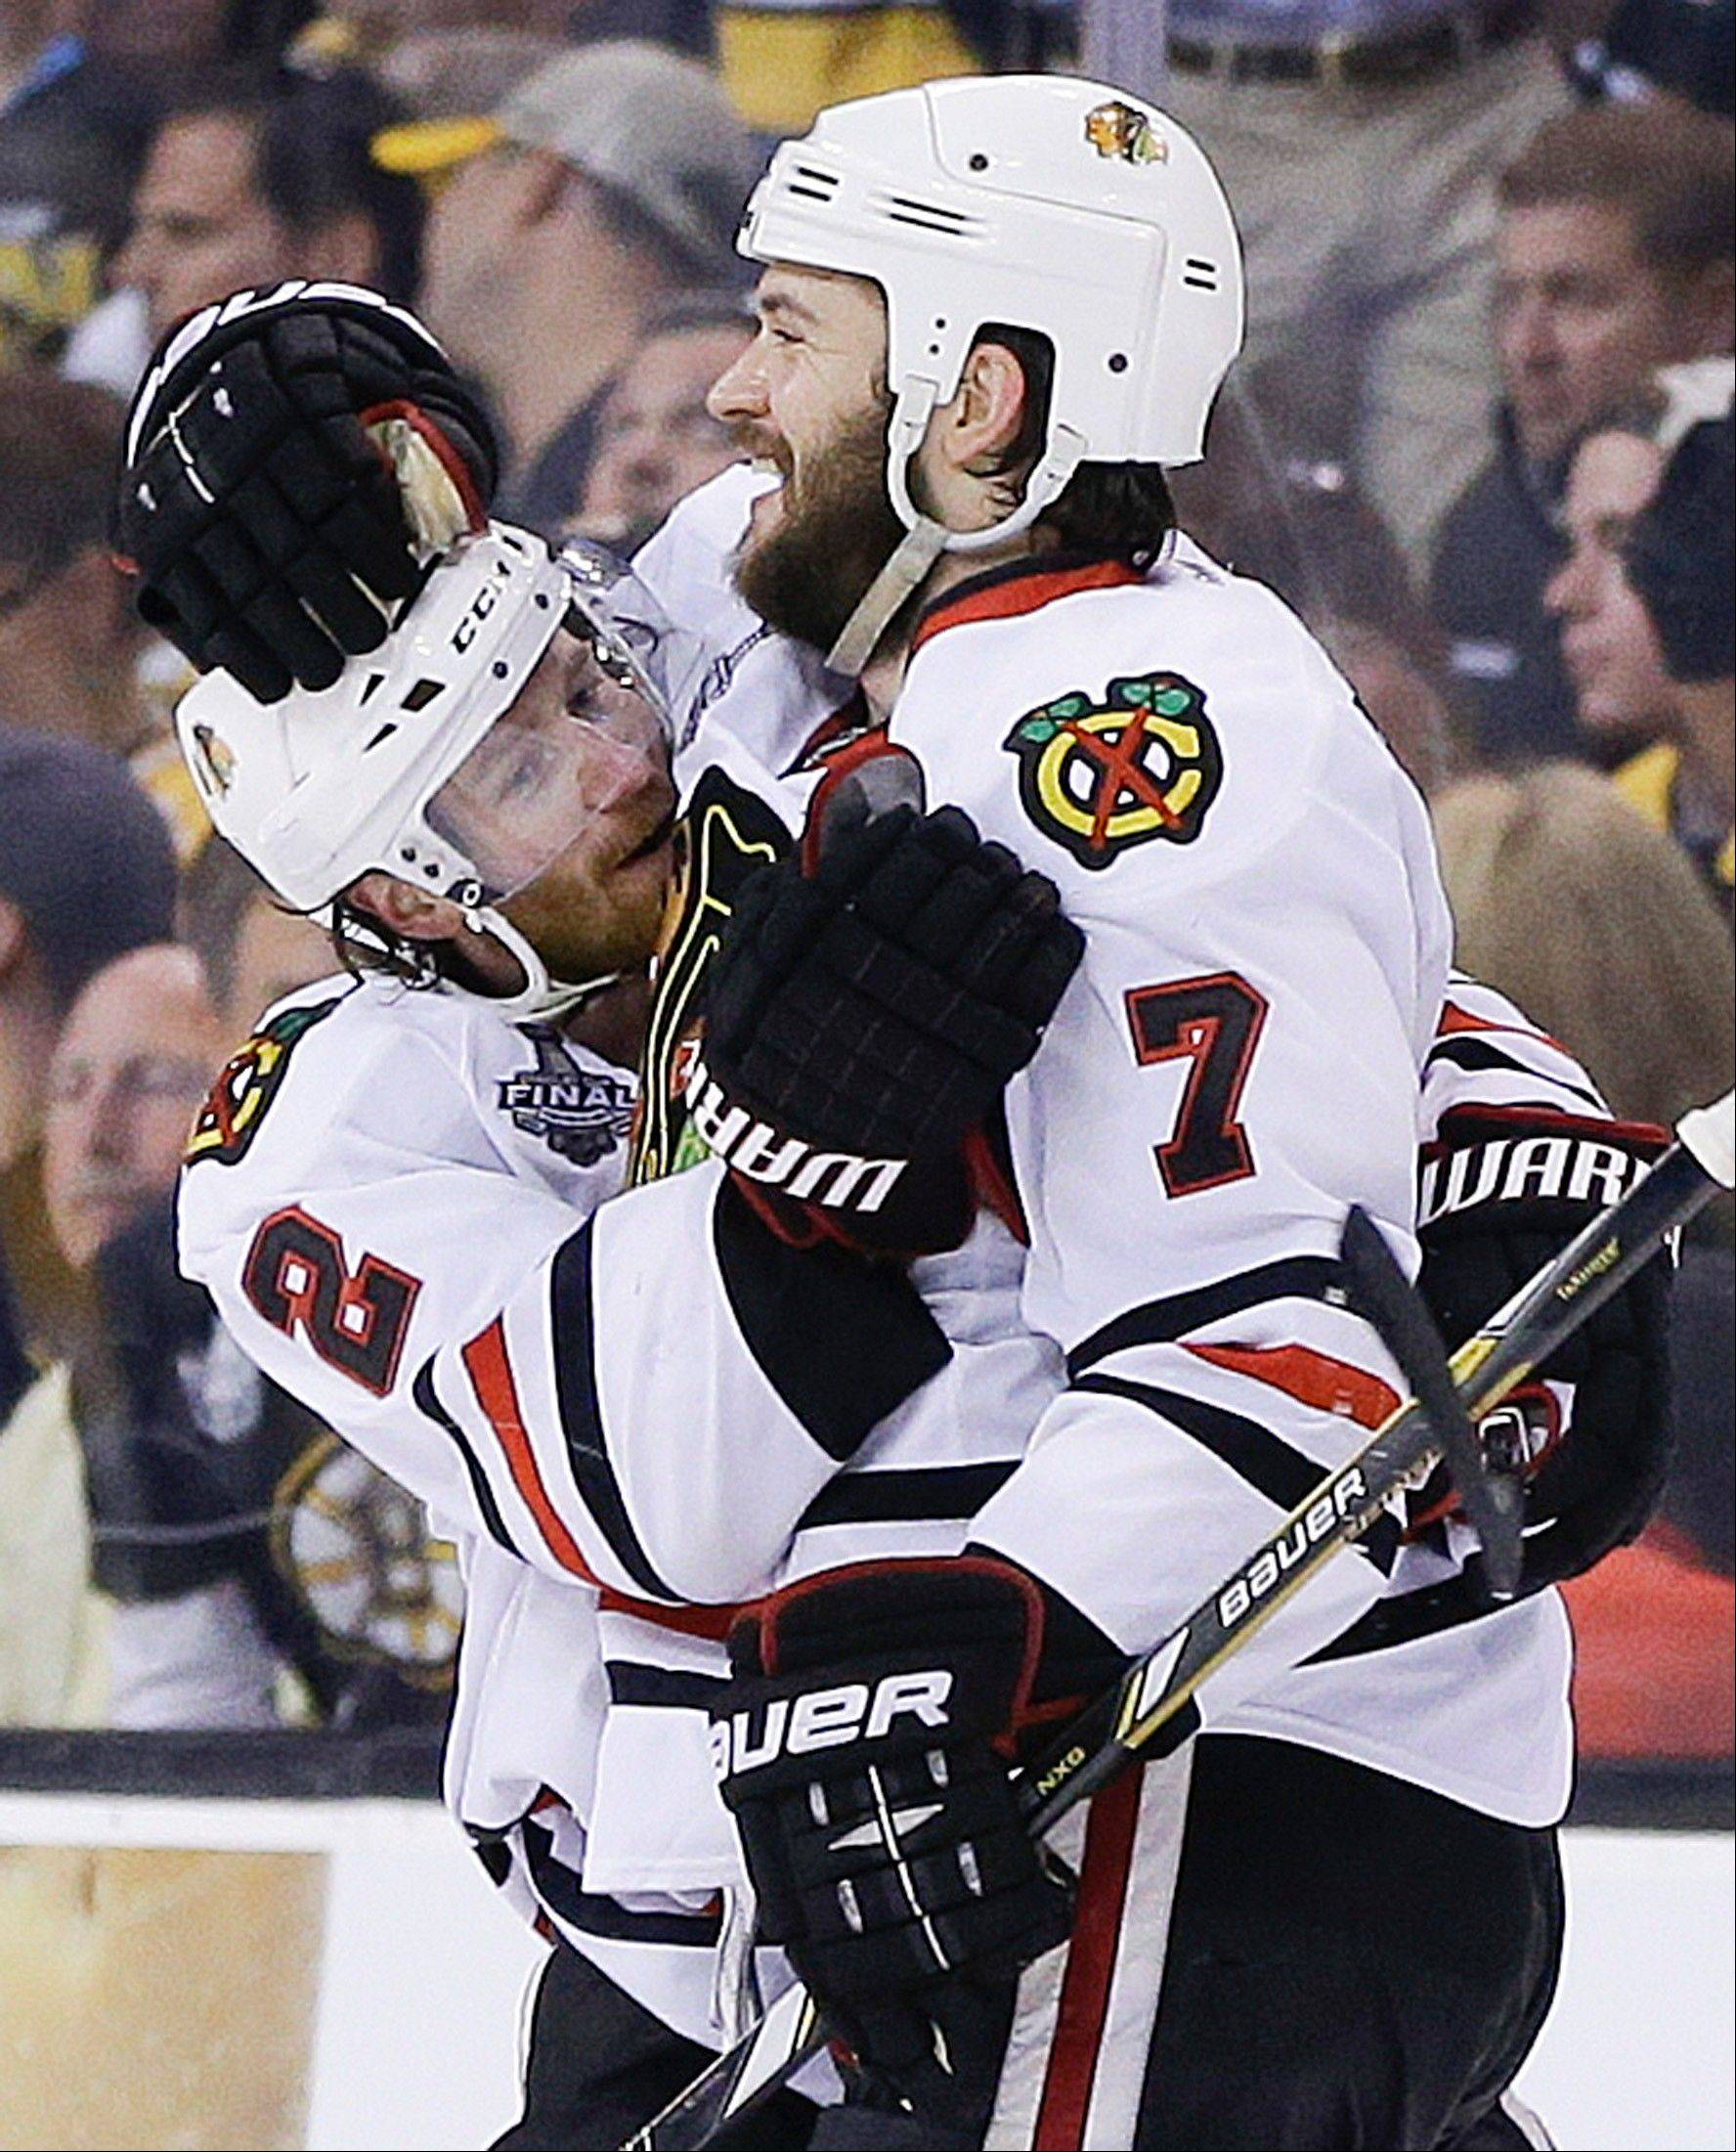 Chicago Blackhawks defenseman Brent Seabrook (7) celebrates his game-winning goal against the Boston Bruins with defenseman Duncan Keith (2) during the first overtime period in Game 4 of the NHL hockey Stanley Cup Finals, Wednesday, June 19, 2013, in Boston. Chicago won 6-5.